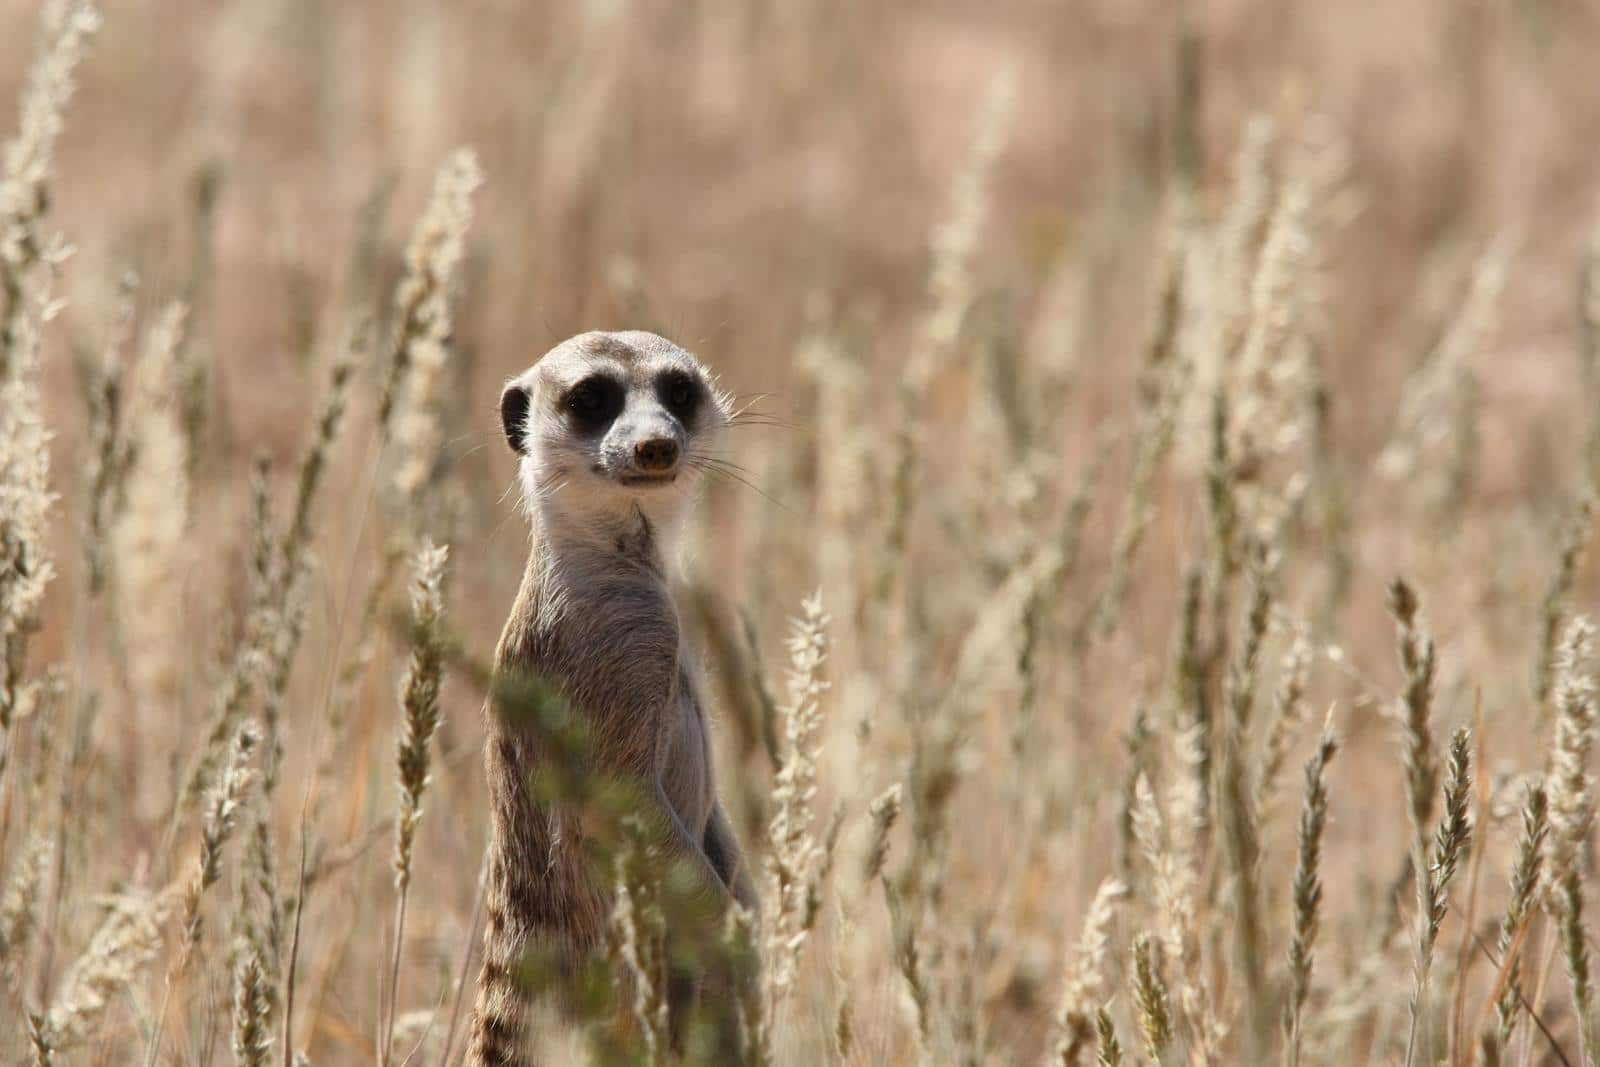 Cute little meerkats can also carry rabies. (Photo: Karin Theron)